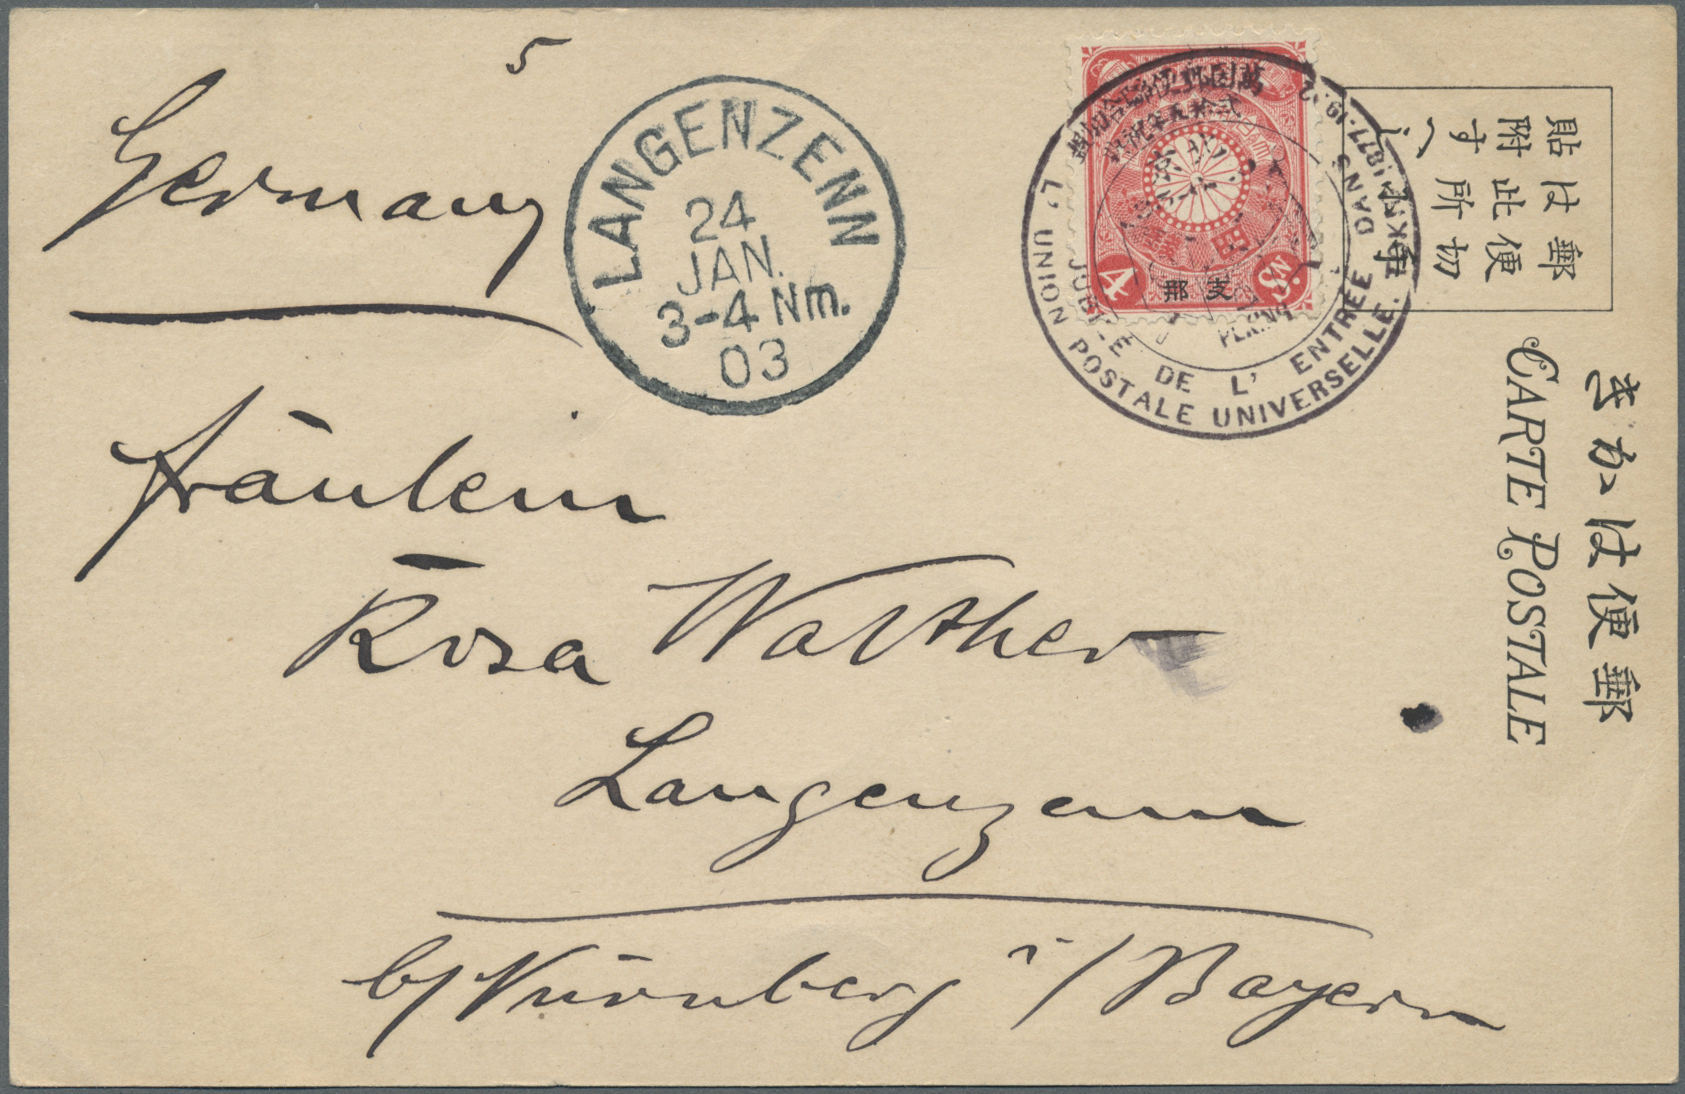 Lot 6570 - japanische post in china  -  Auktionshaus Christoph Gärtner GmbH & Co. KG Philately: ASIA single lots including Special Catalog Malaya Auction #39 Day 3